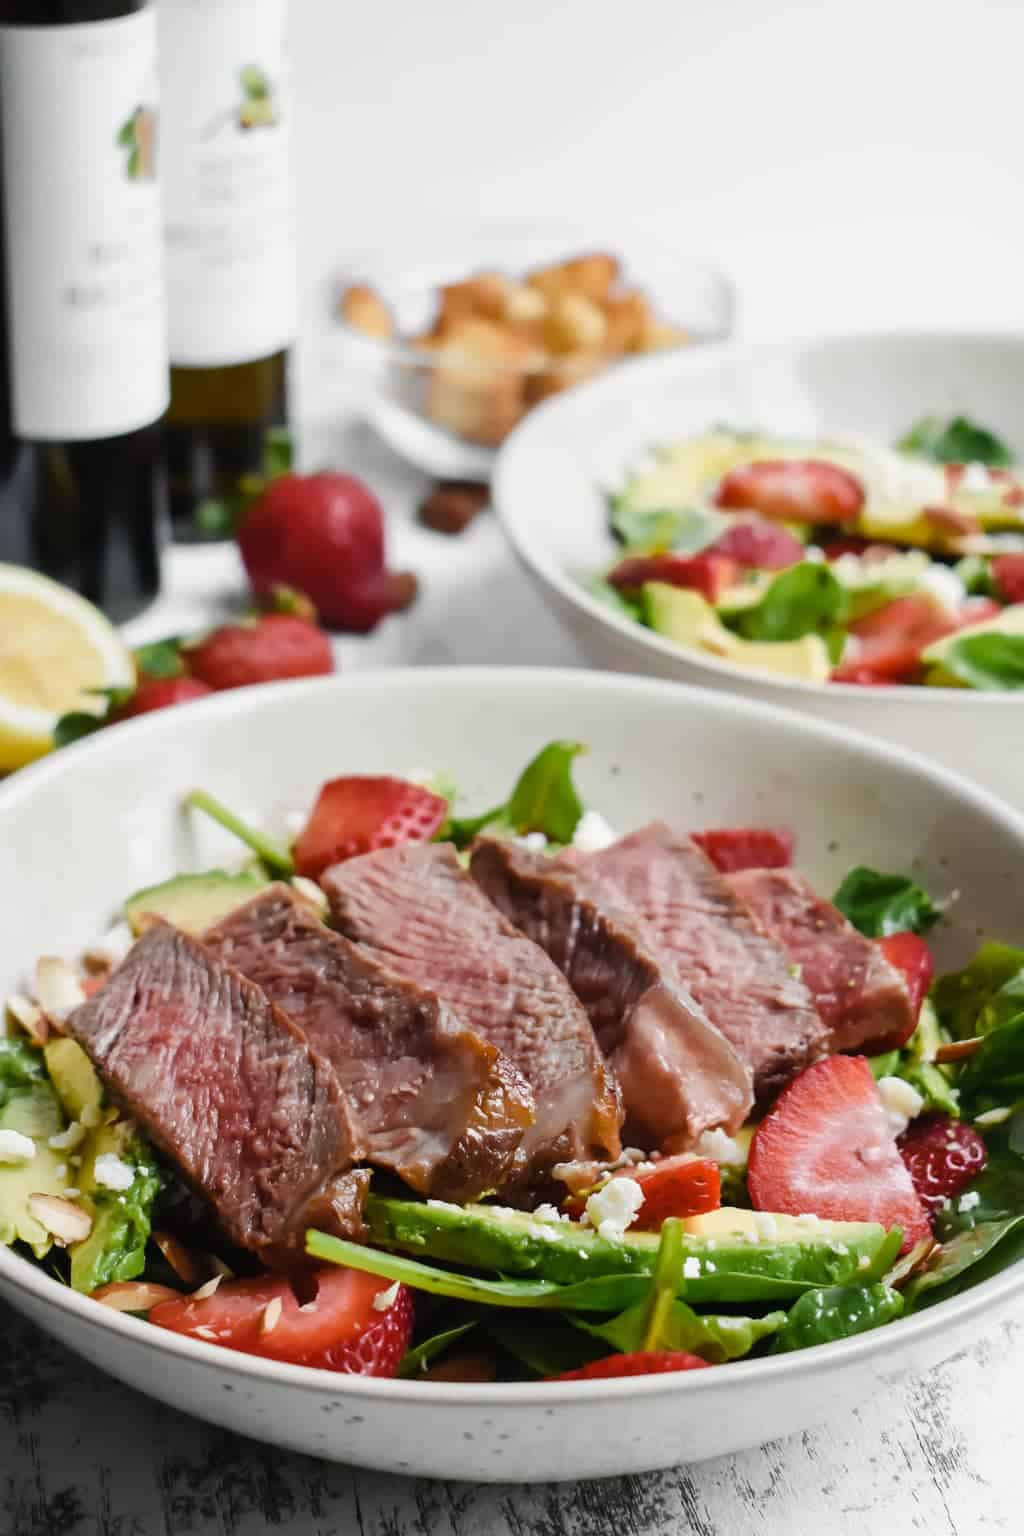 spinach salad with strawberries, avocado and steak in white bowls